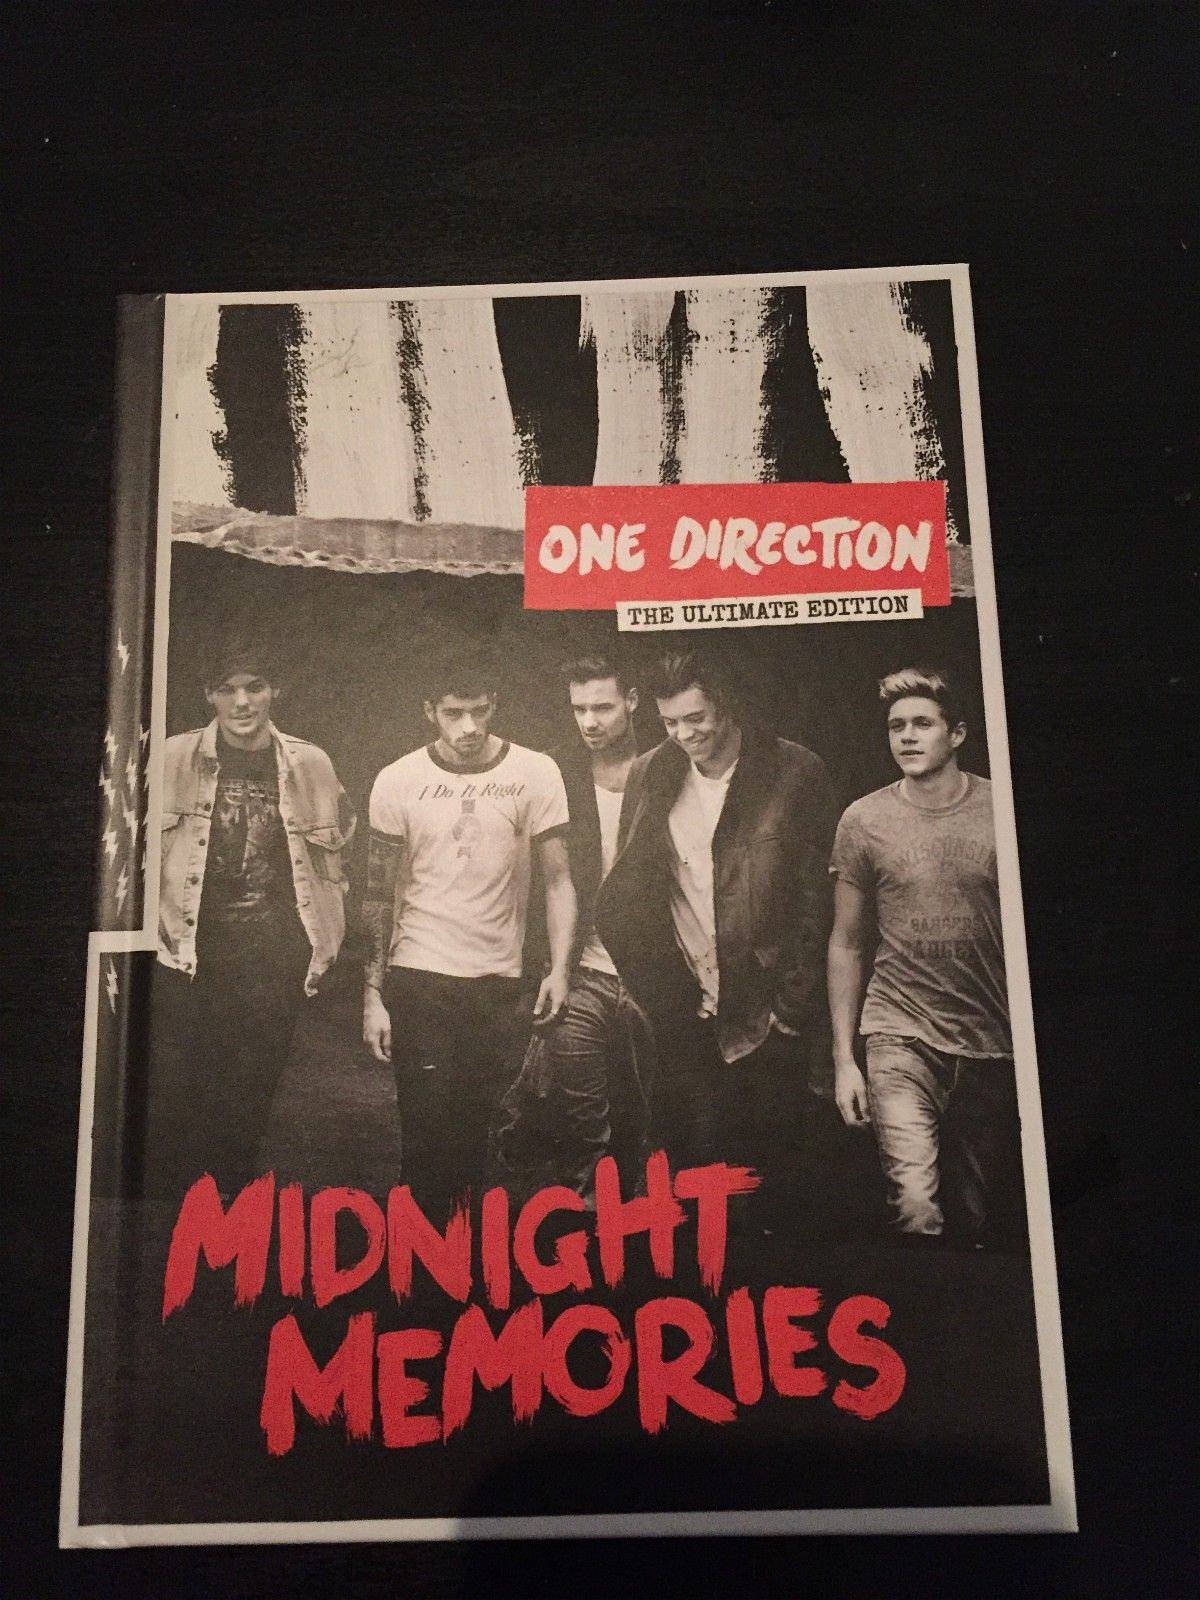 One direction bok med cd - Nærbø  - One direction the ultimate edition midnight memories bok med cd. - Nærbø